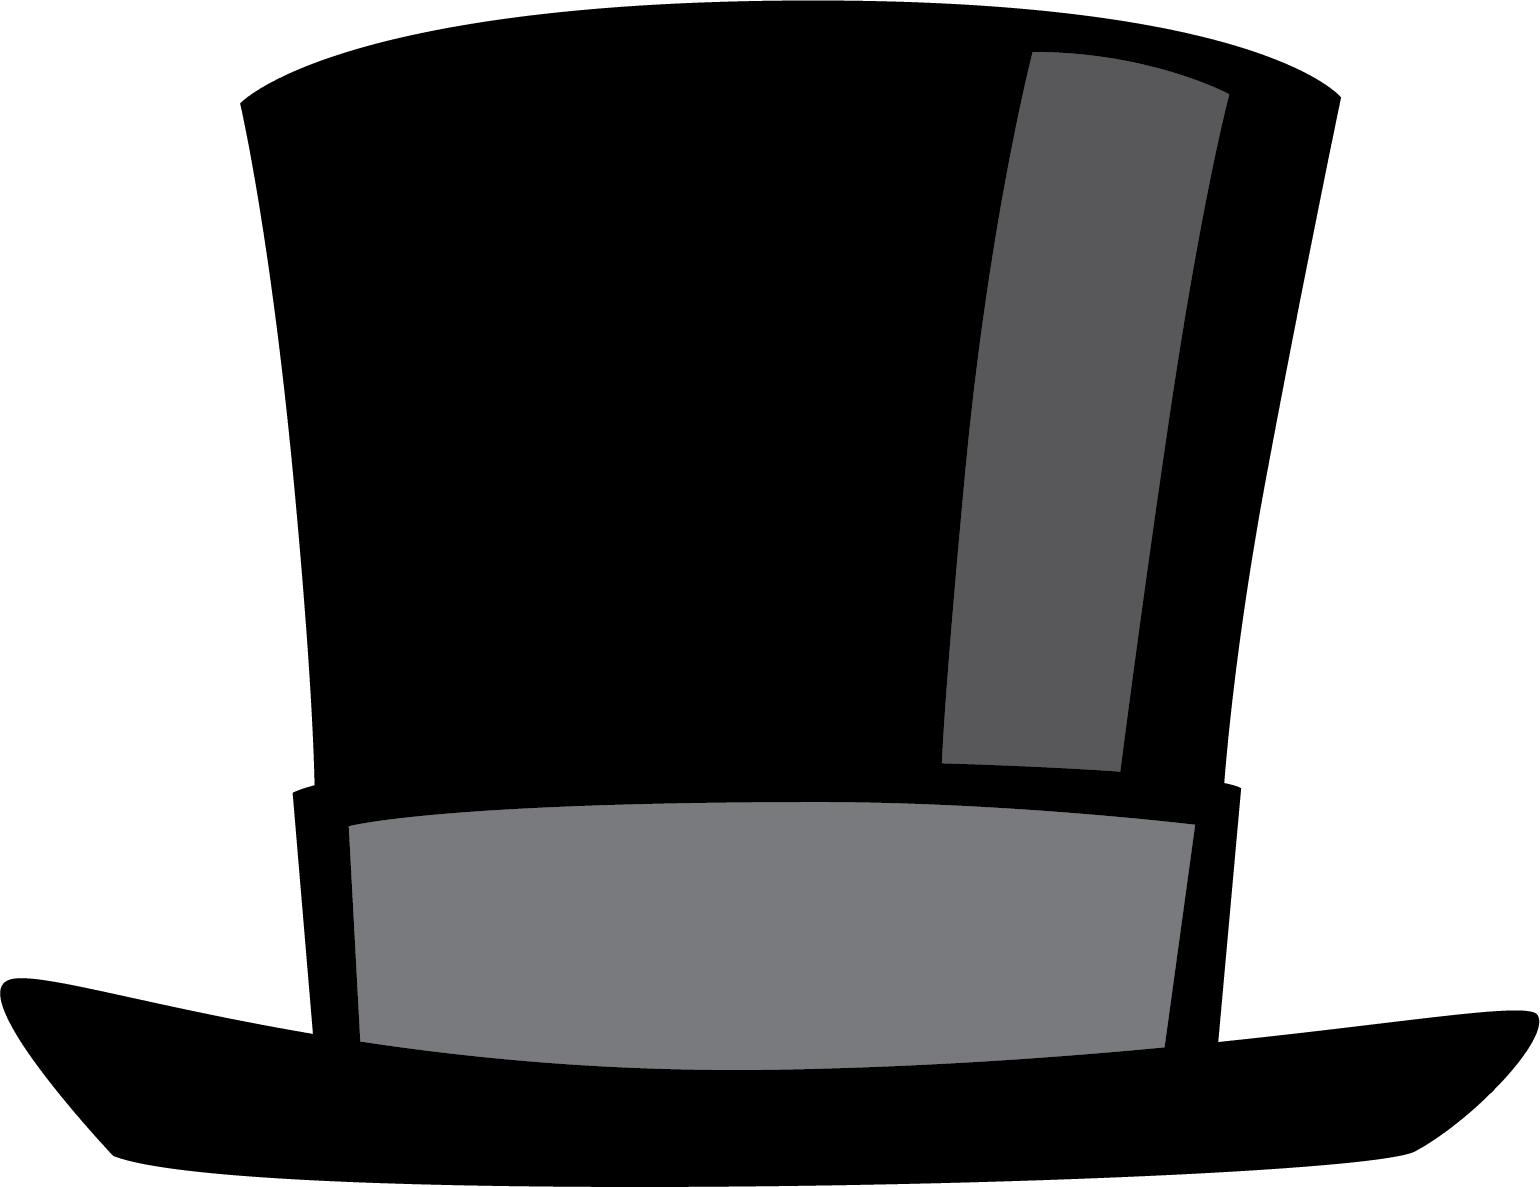 Vision clipart visibility. Cartoon pictures of hats